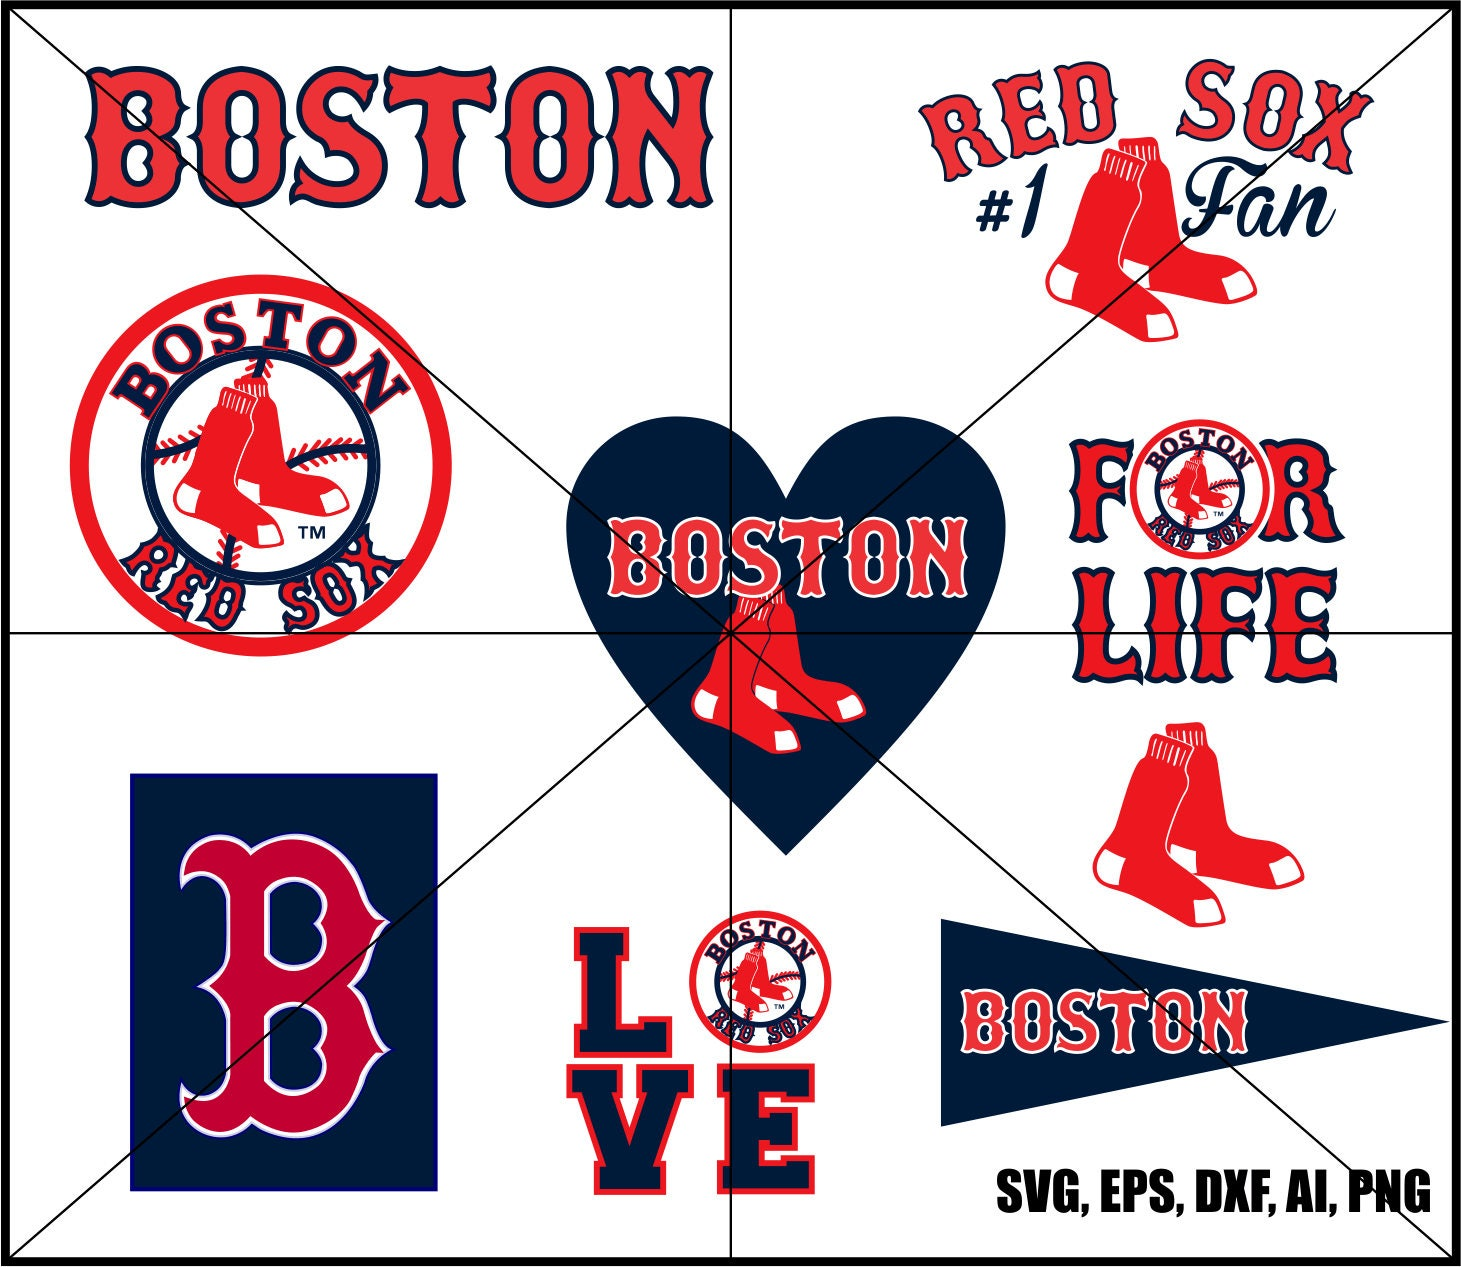 boston red sox clip art and logos 1 fan love baseball in red sox clip art coloring pages go red sox clip art